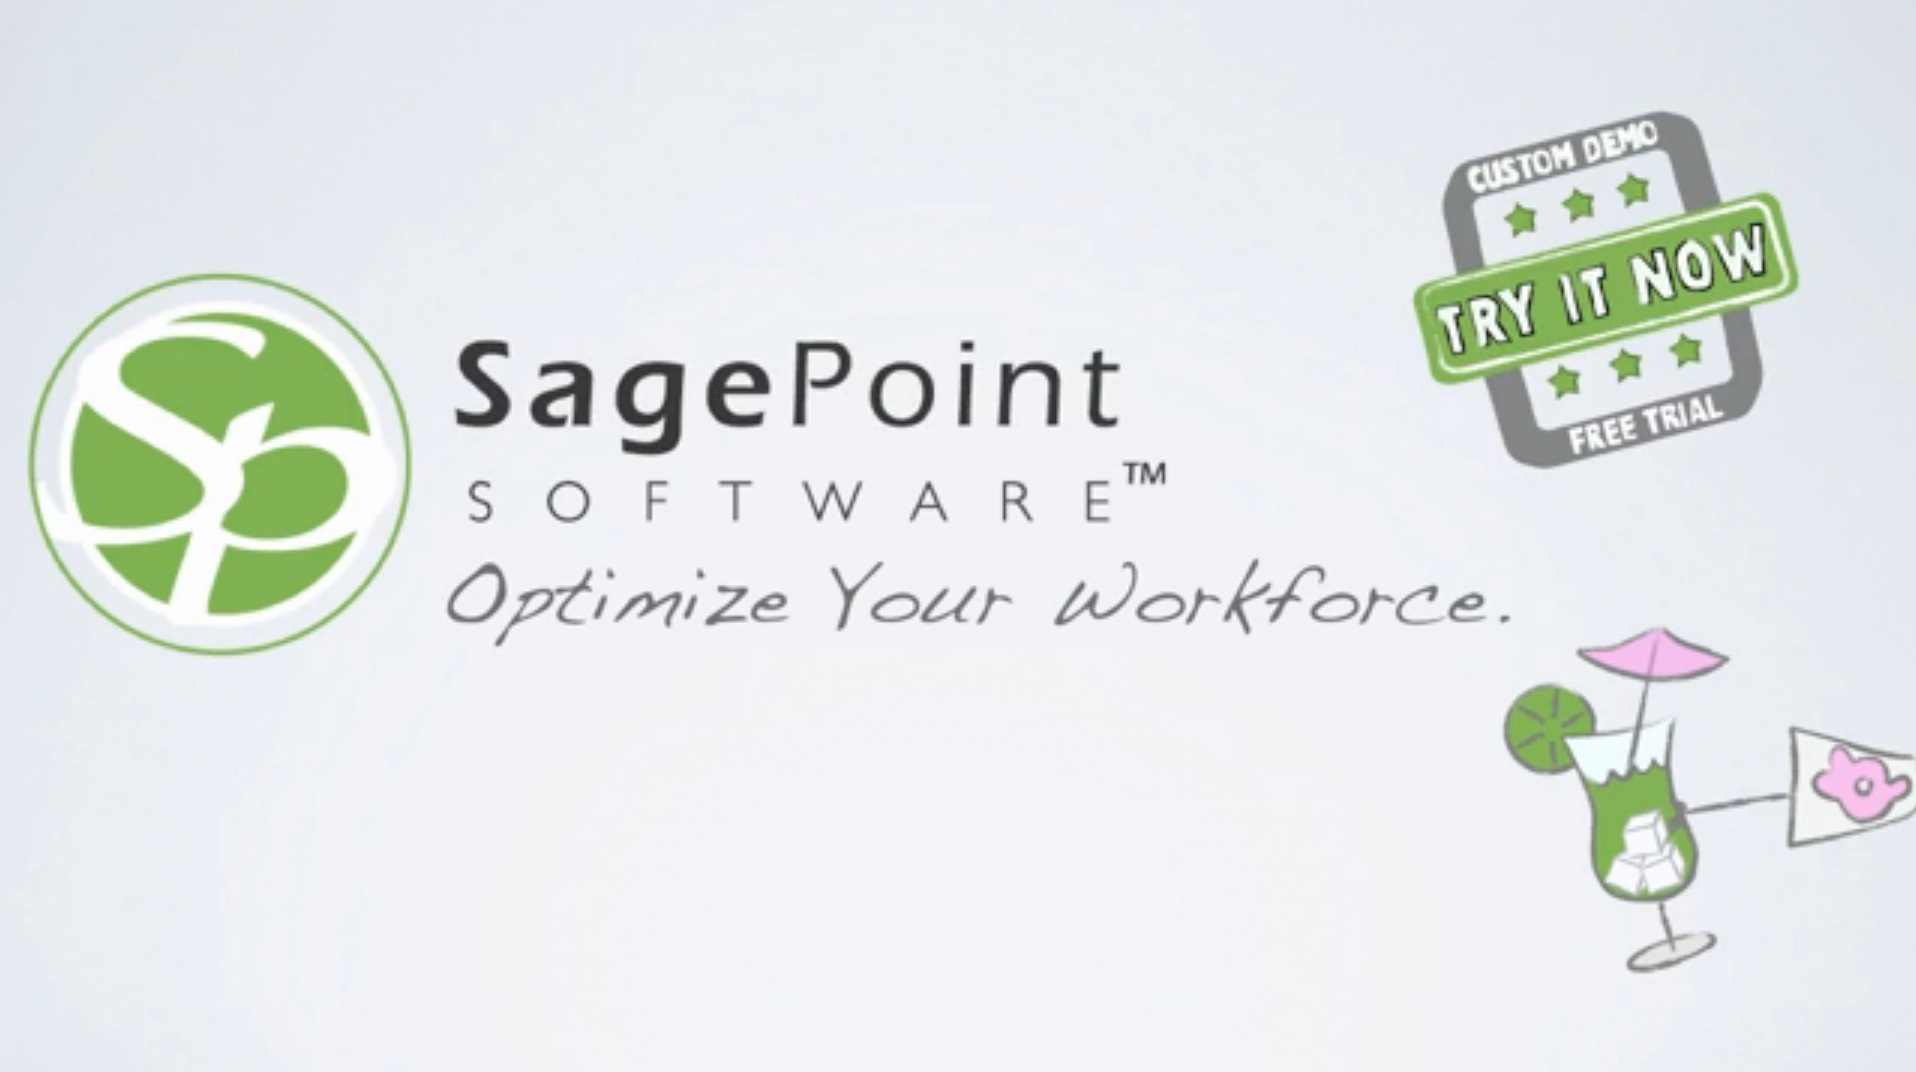 SagePoint™ helps you capture, track, and manage the unique skillset of your workforce.